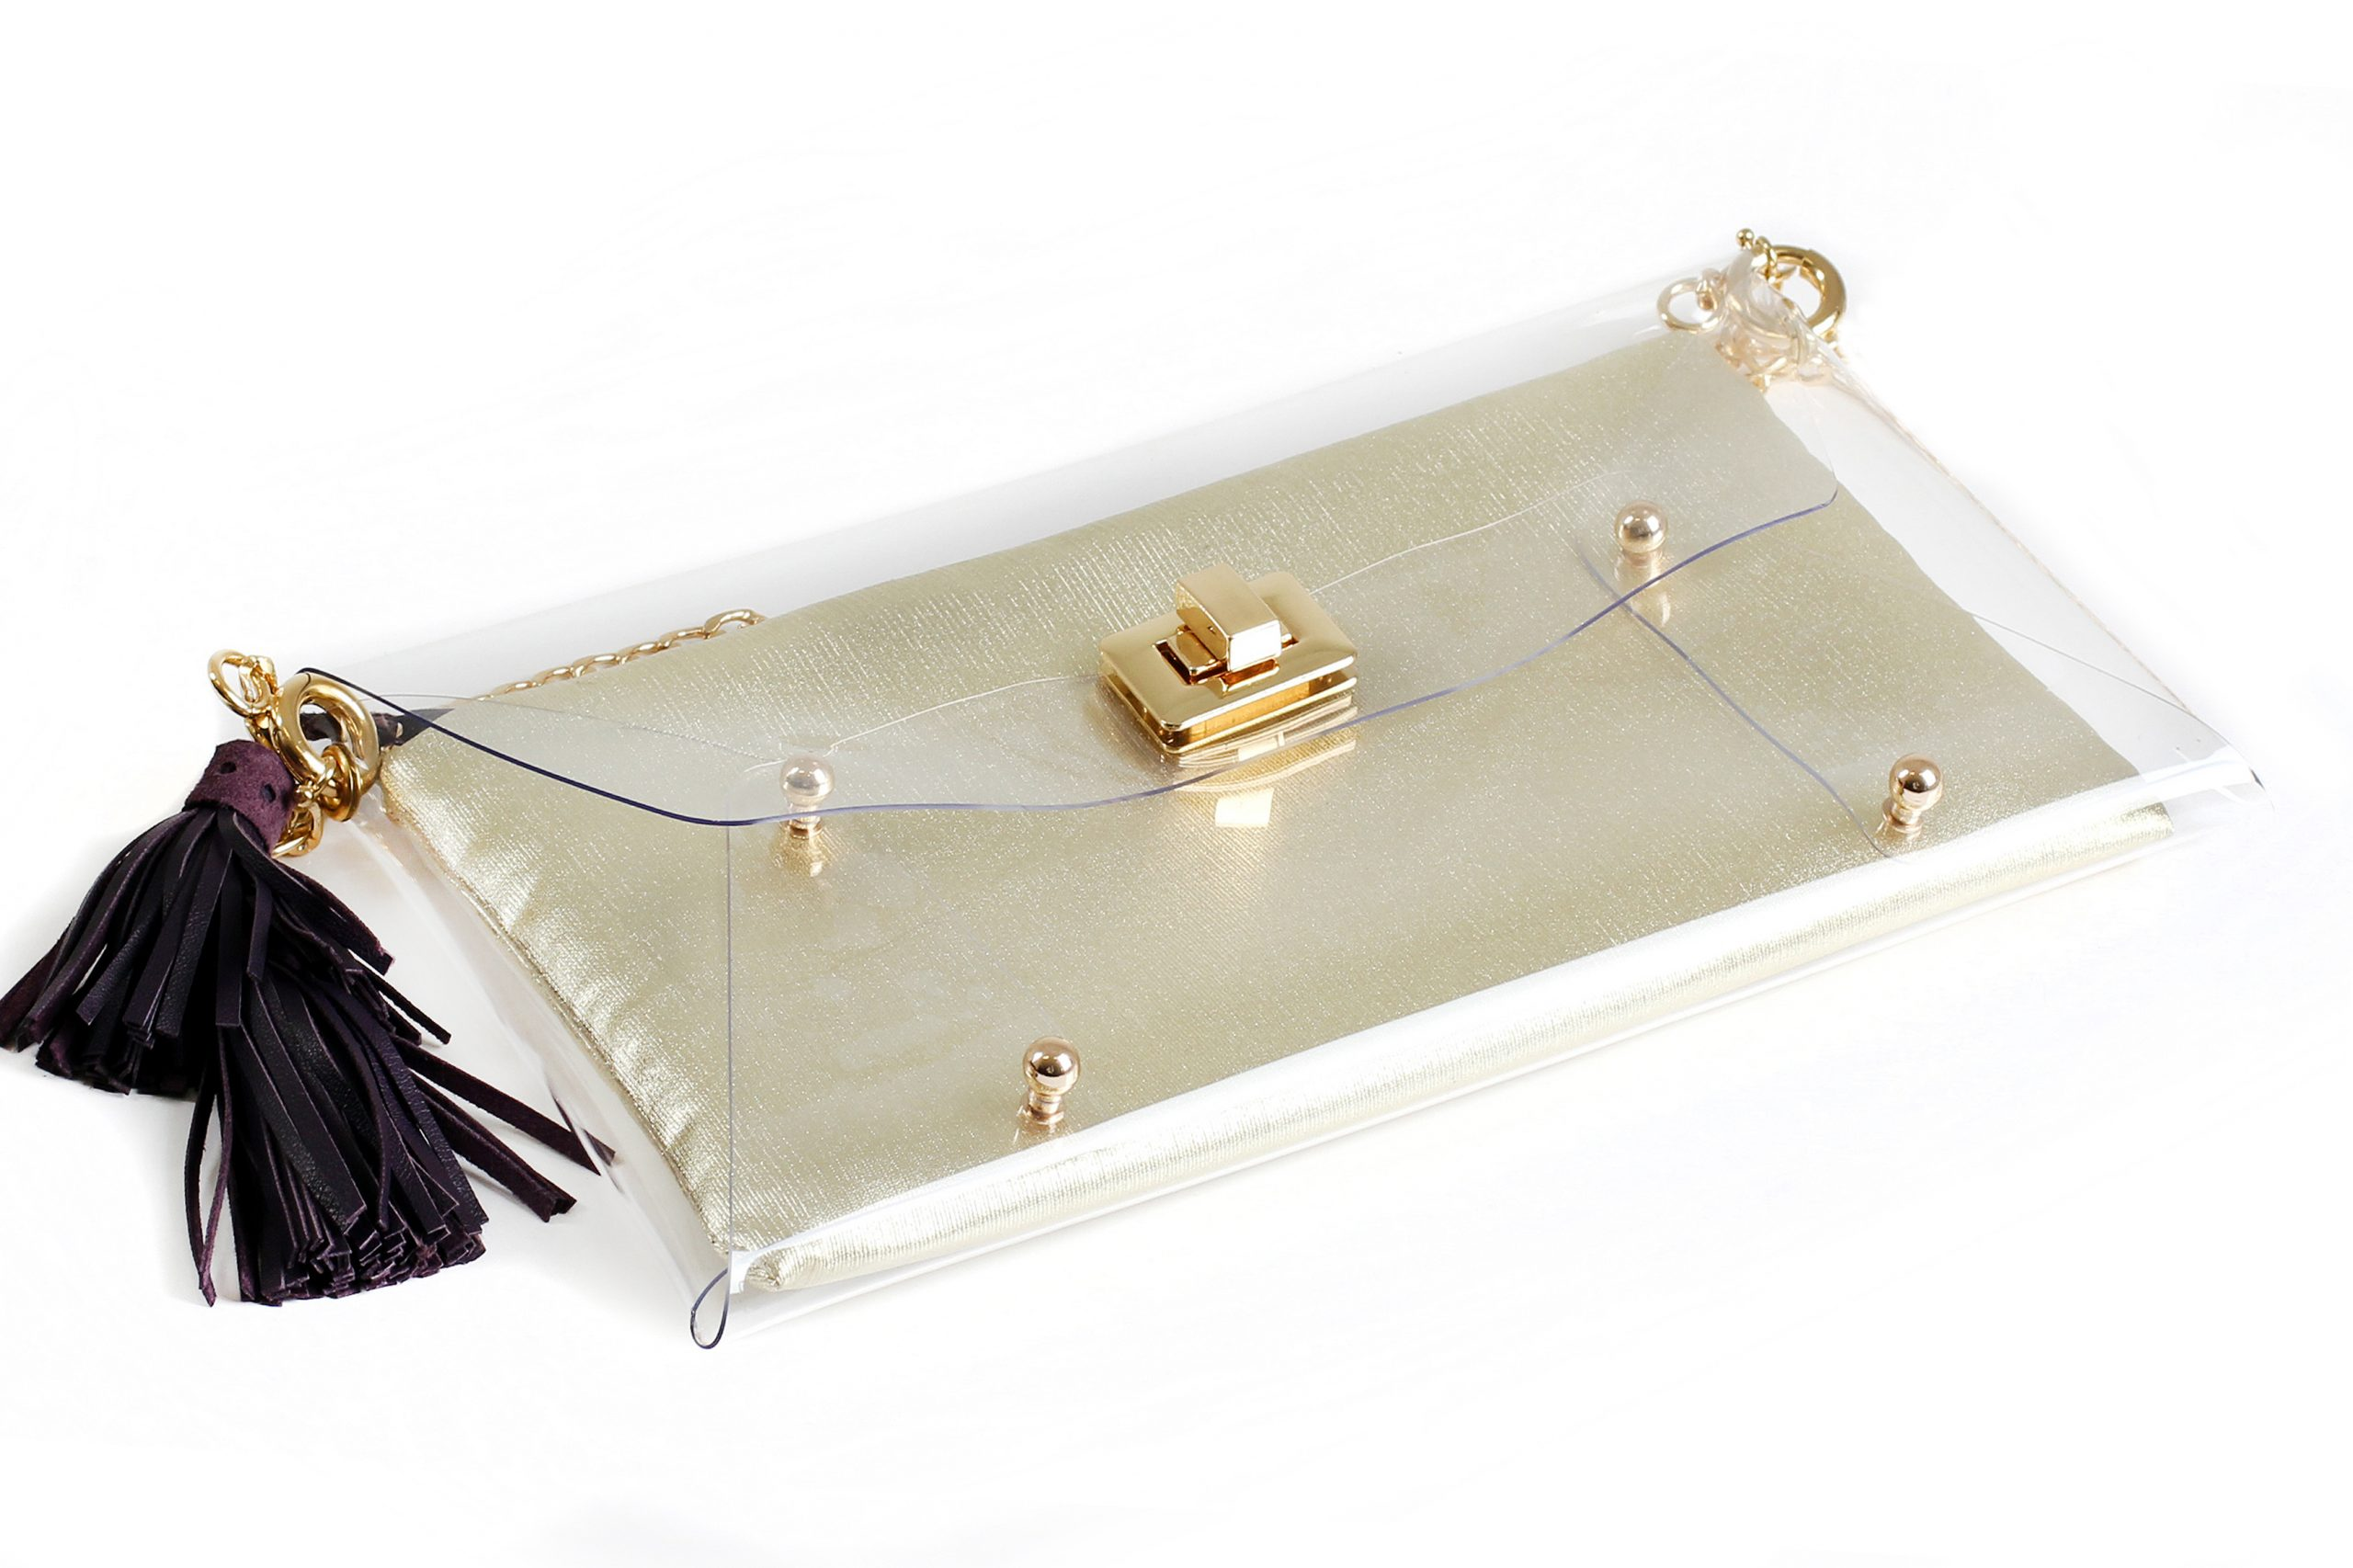 Yemen Gold Clutch bag by Mardre – Evening clutch bags online